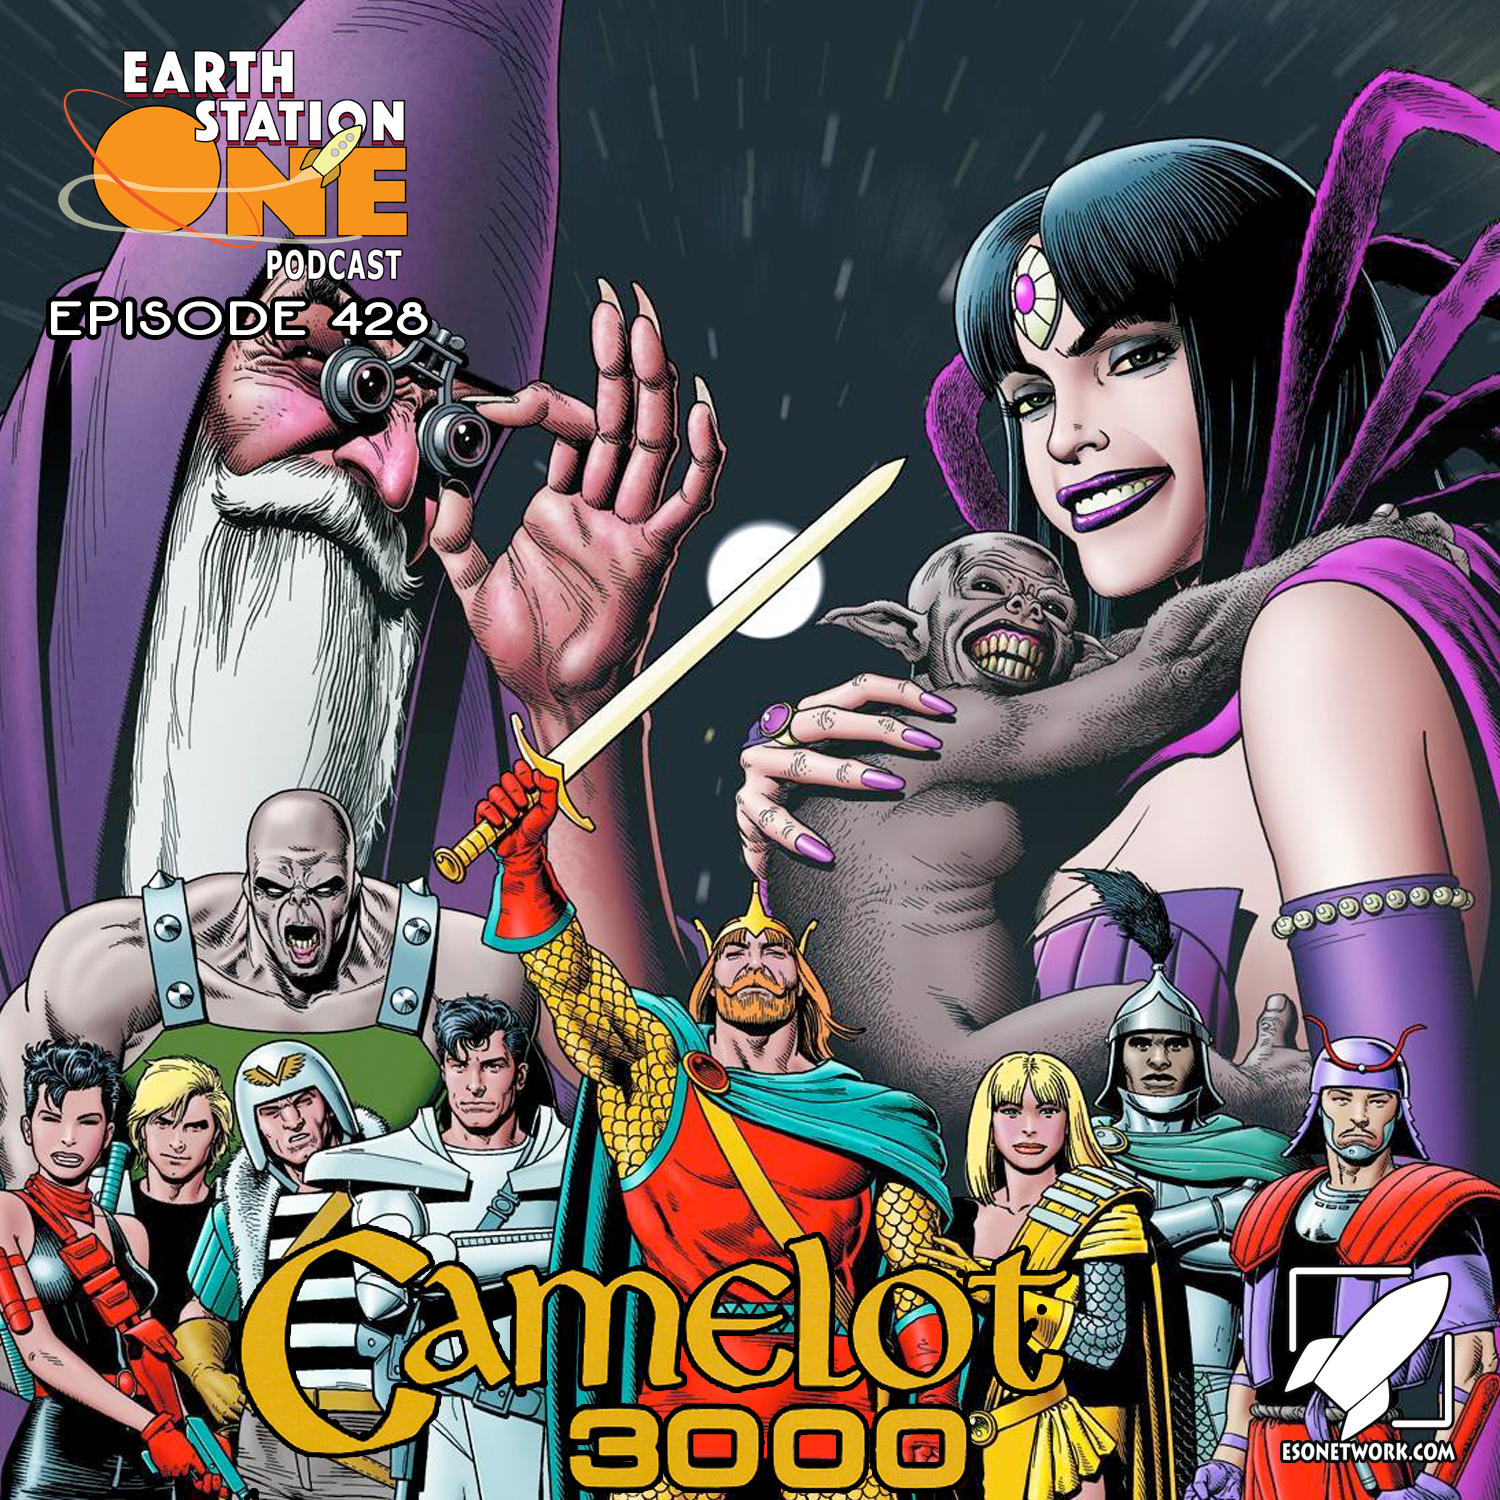 Earth Station One Podcast Ep 428